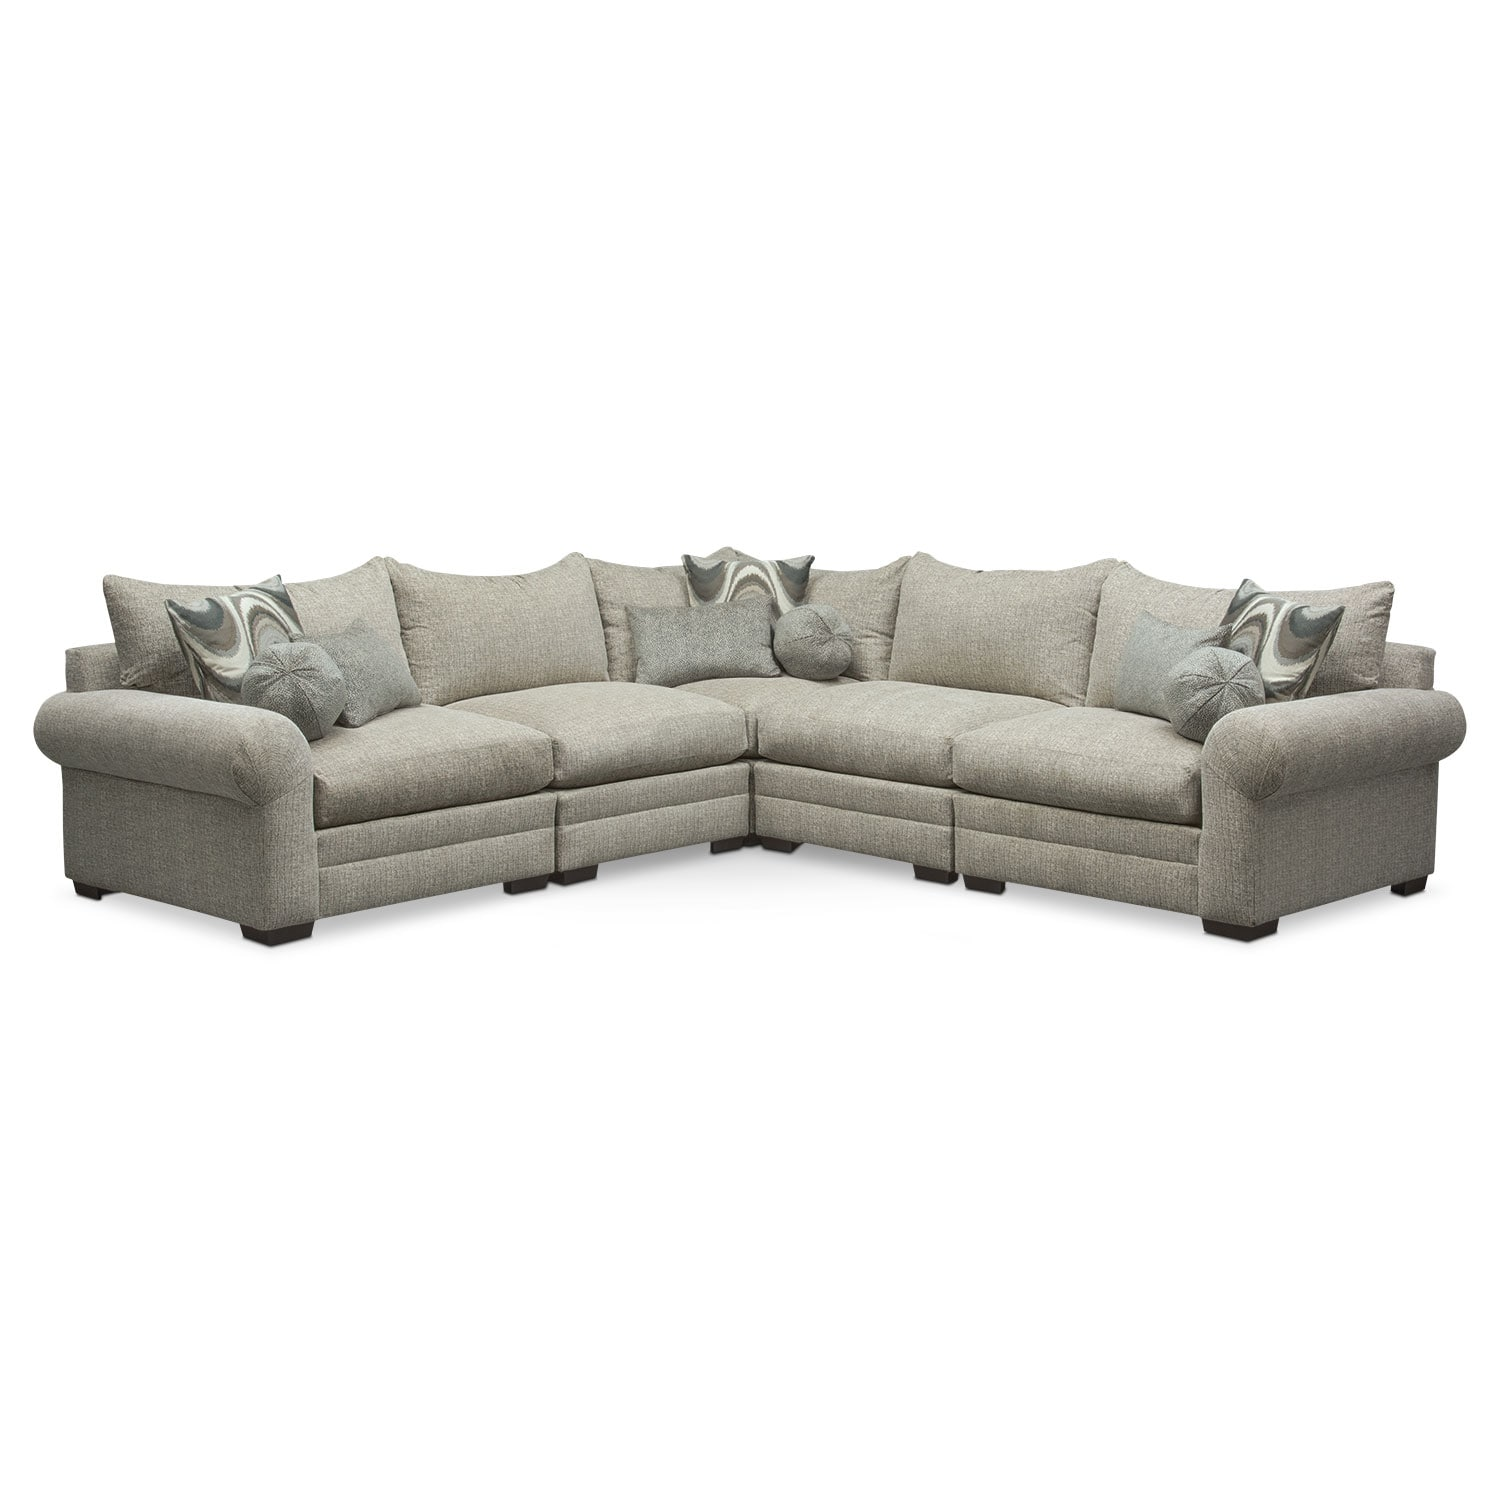 Living Room Furniture - Wilshire 5-Piece Sectional - Gray